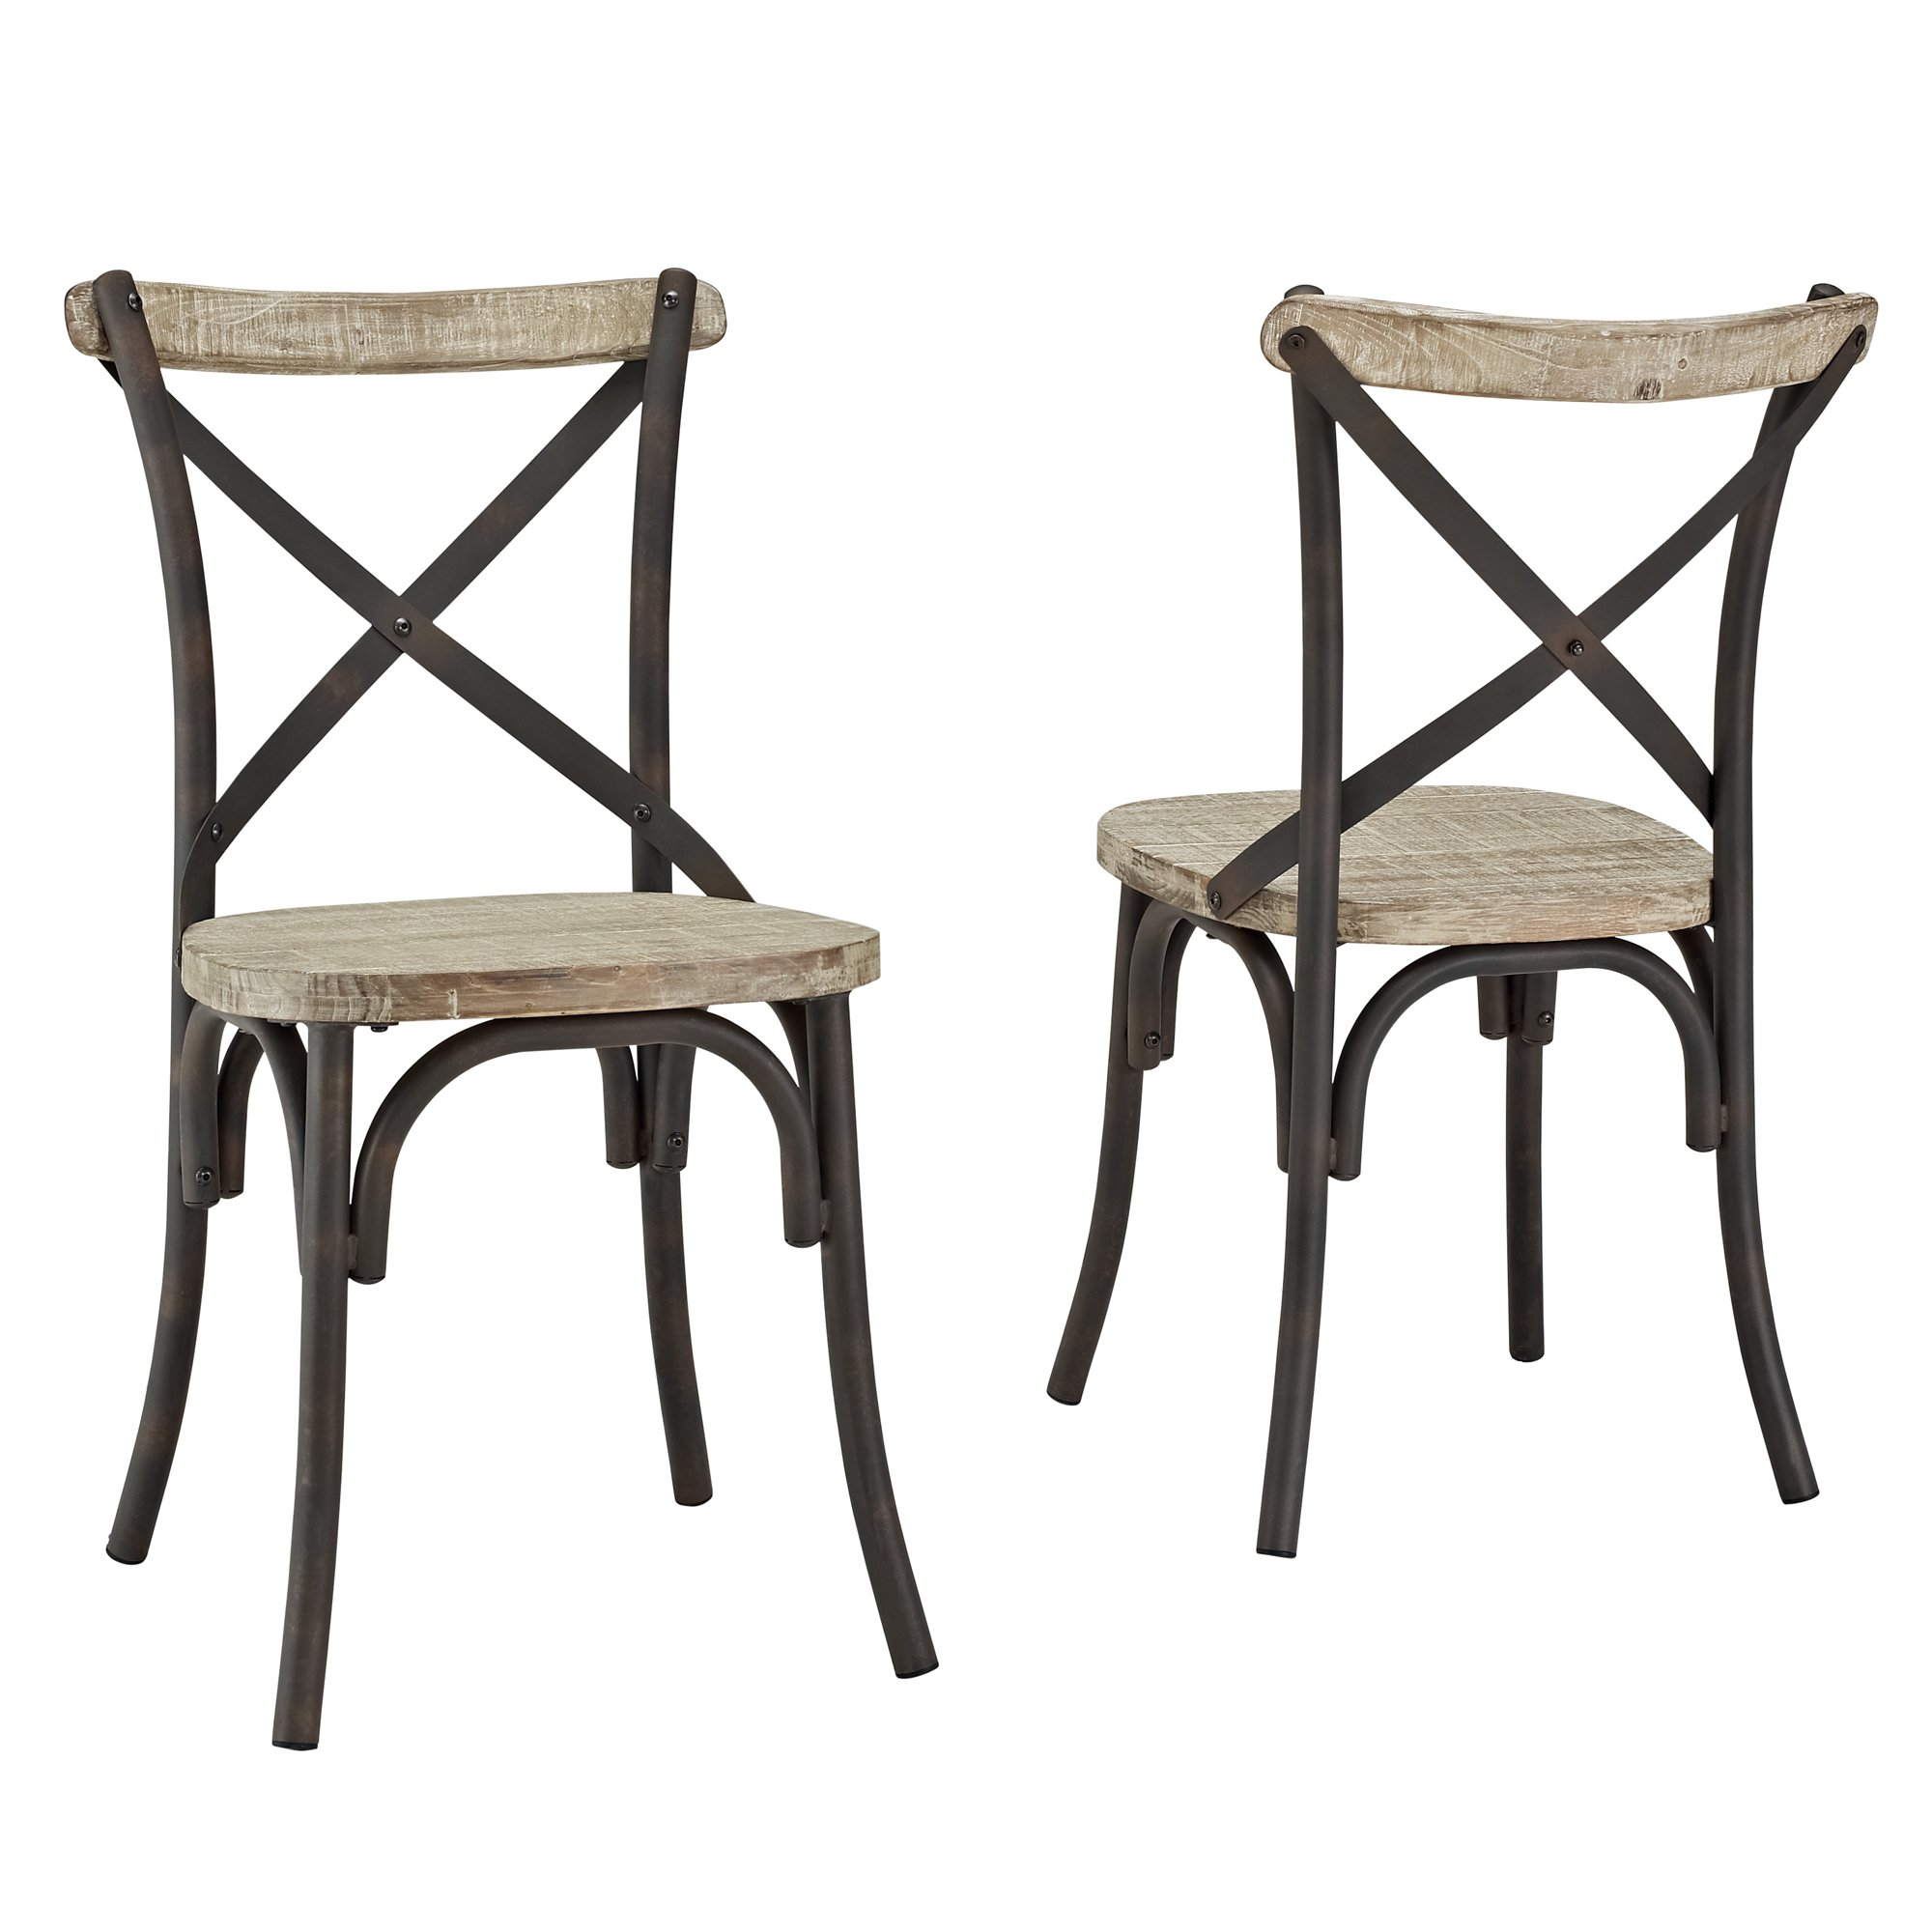 Industrial Reclaimed Solid Wood Dining Chairs Set of 2  sc 1 st  FurnitureNDecor.com & Industrial Reclaimed Solid Wood Dining Chairs Set of 2 ...